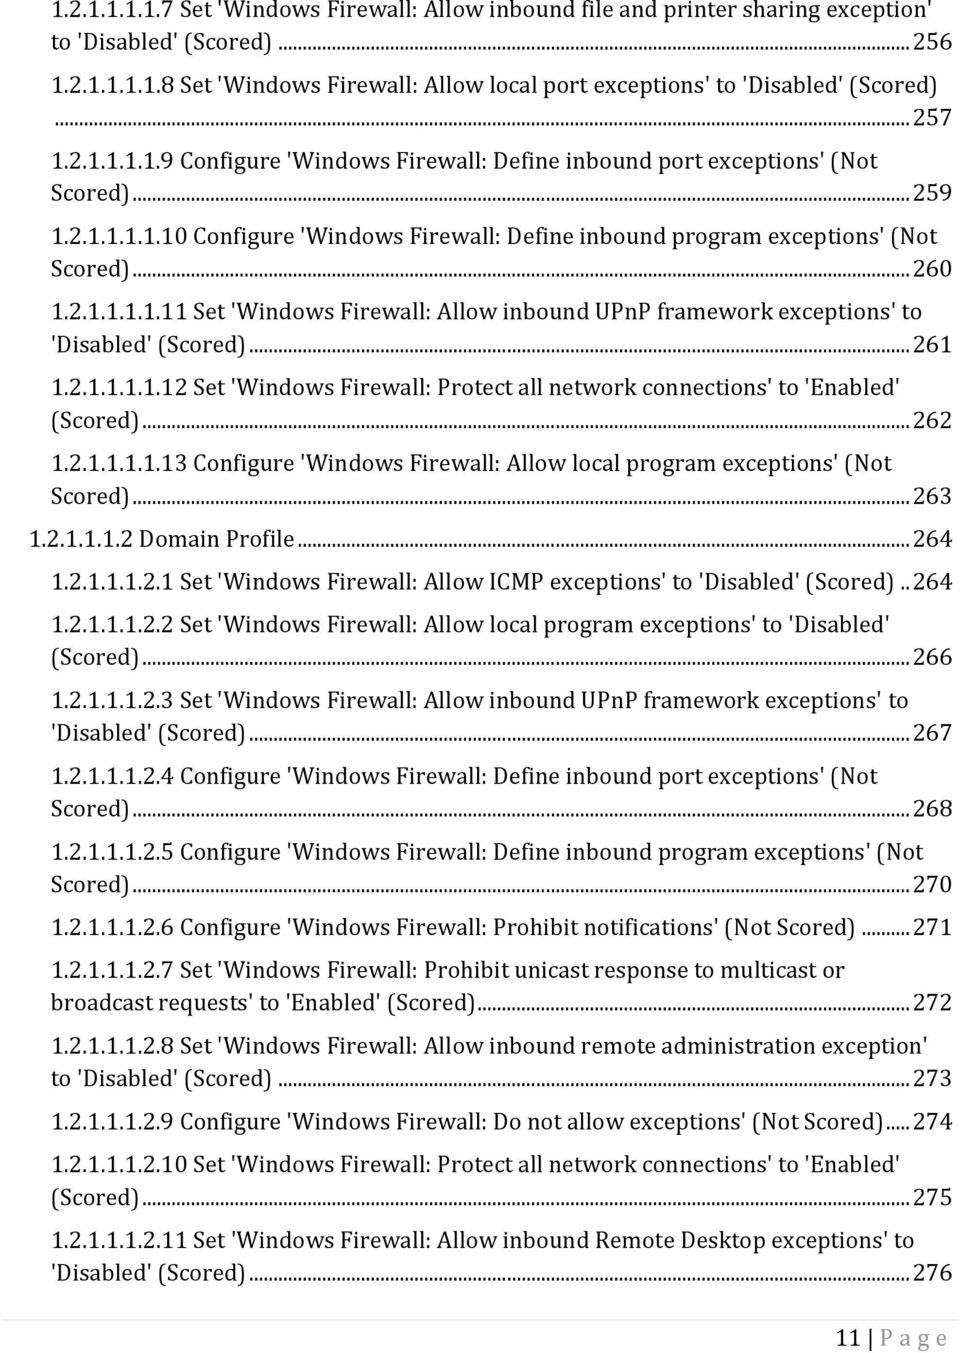 .. 260 1.2.1.1.1.1.11 Set 'Windows Firewall: Allow inbound UPnP framework exceptions' to 'Disabled' (Scored)... 261 1.2.1.1.1.1.12 Set 'Windows Firewall: Protect all network connections' to 'Enabled' (Scored).